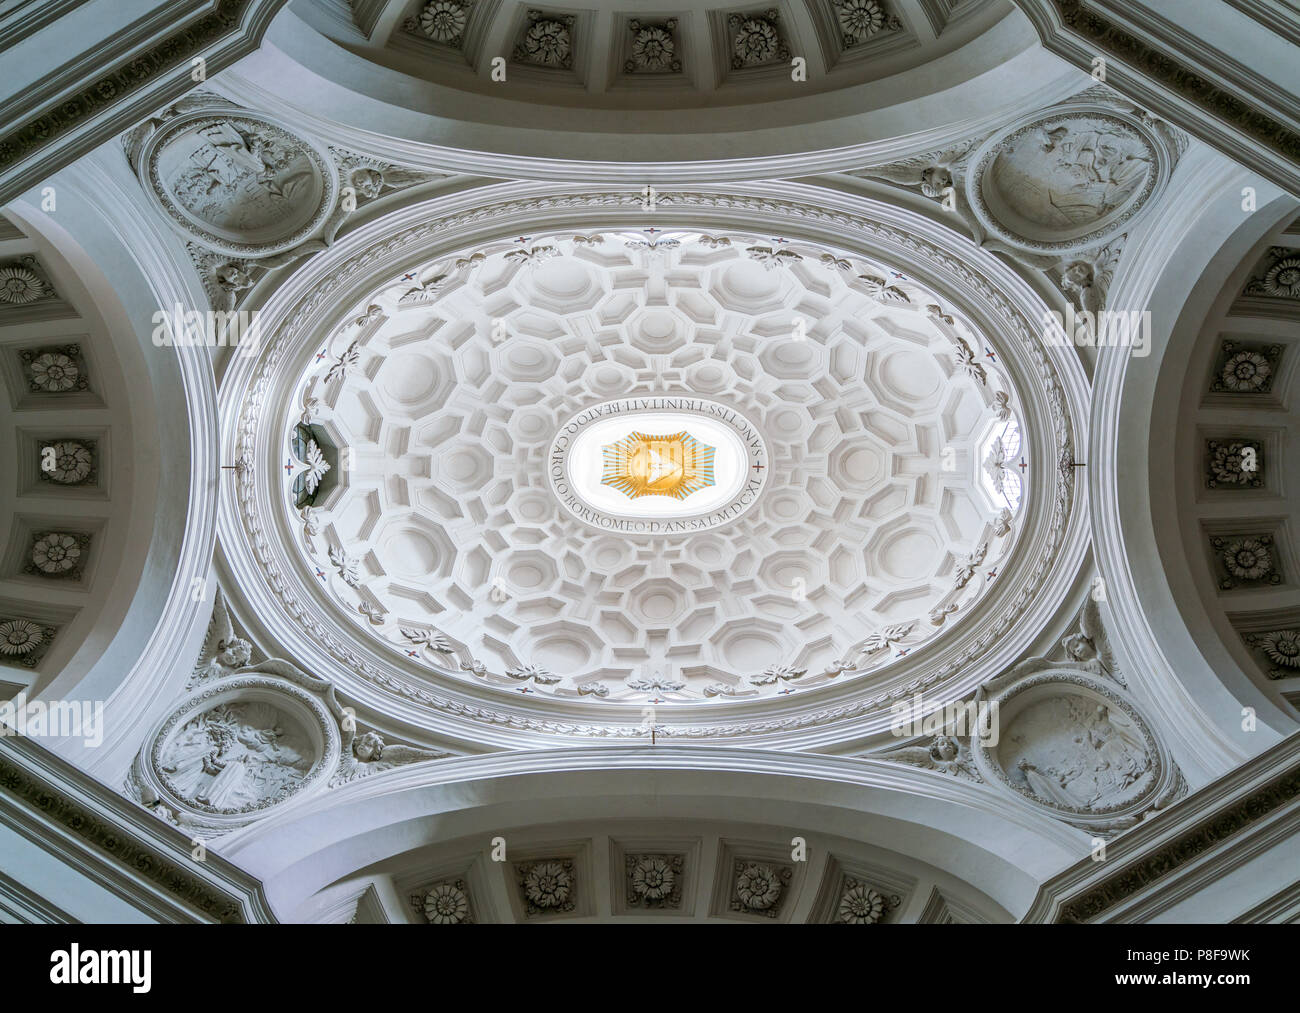 The dome in the Church of Saint Charles at the Four Fountains in Rome, Italy. - Stock Image